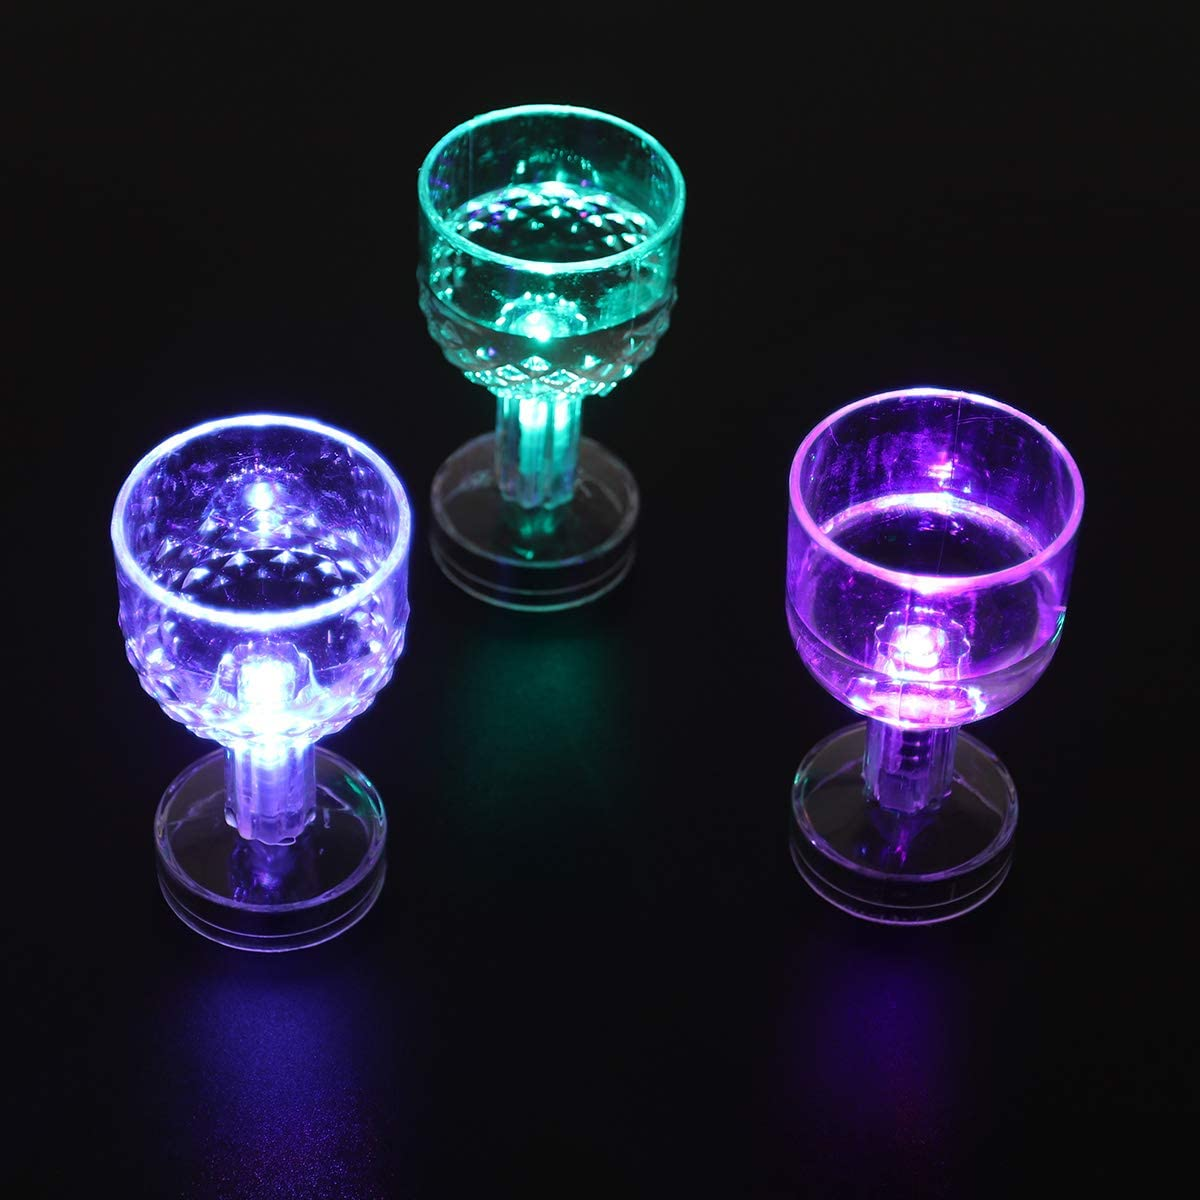 STOBOK Light Up Drink Cups Transparent Wine Cup Colorful Flash Cup Plastic Dancing Party Bar Supplies with Battery 12pcs